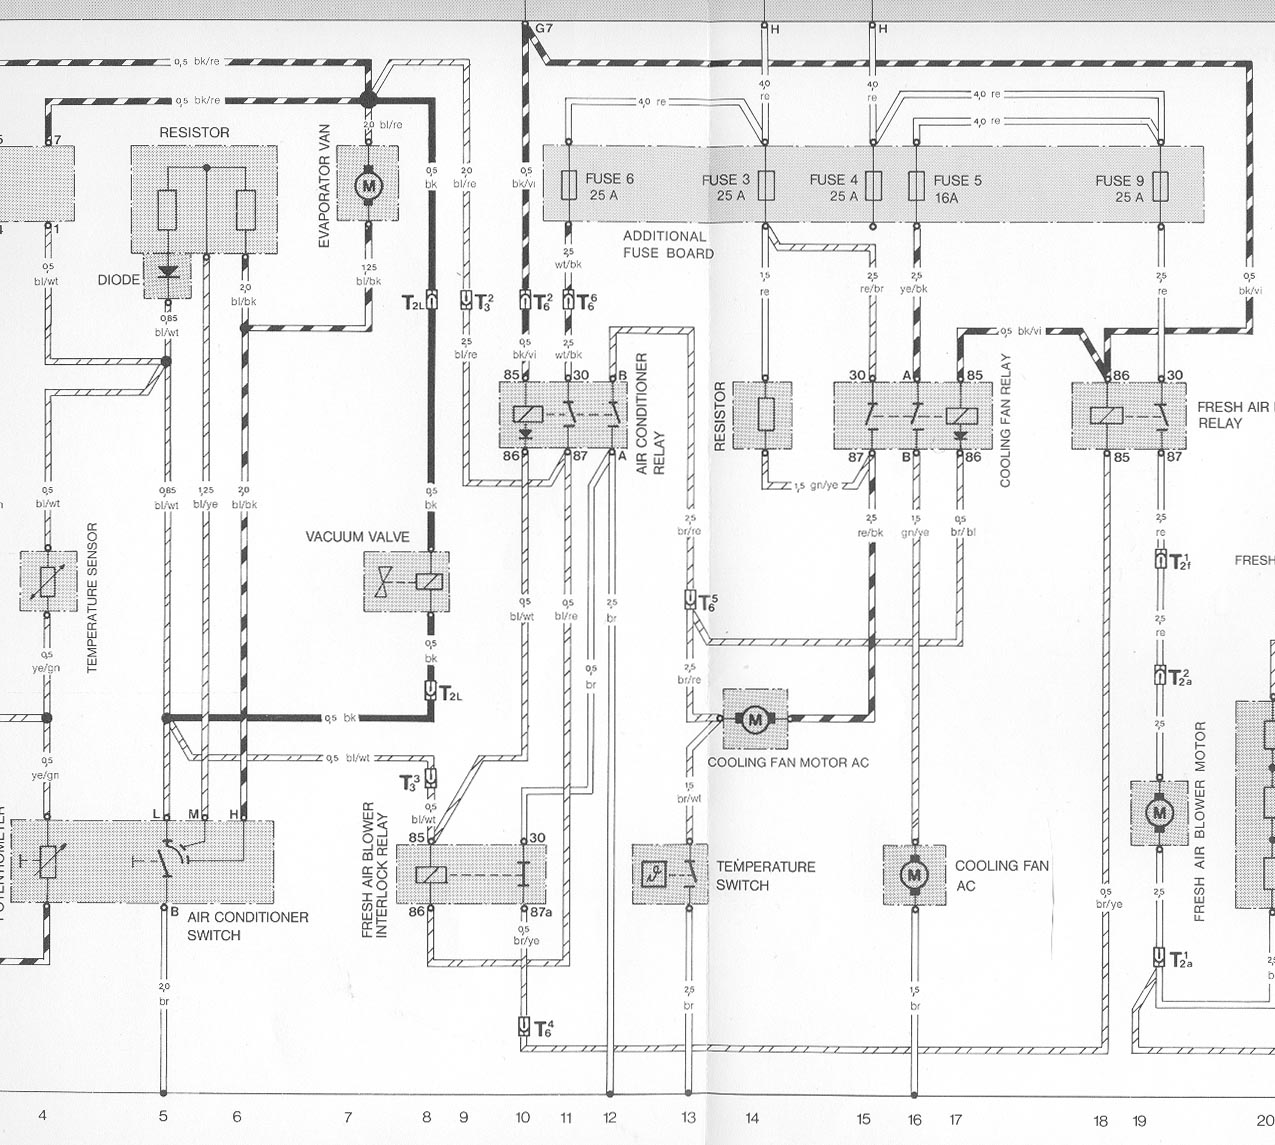 early_cooling_fan_with_ac cooling fan operation and troubleshooting cooling fan relay wiring diagram at alyssarenee.co